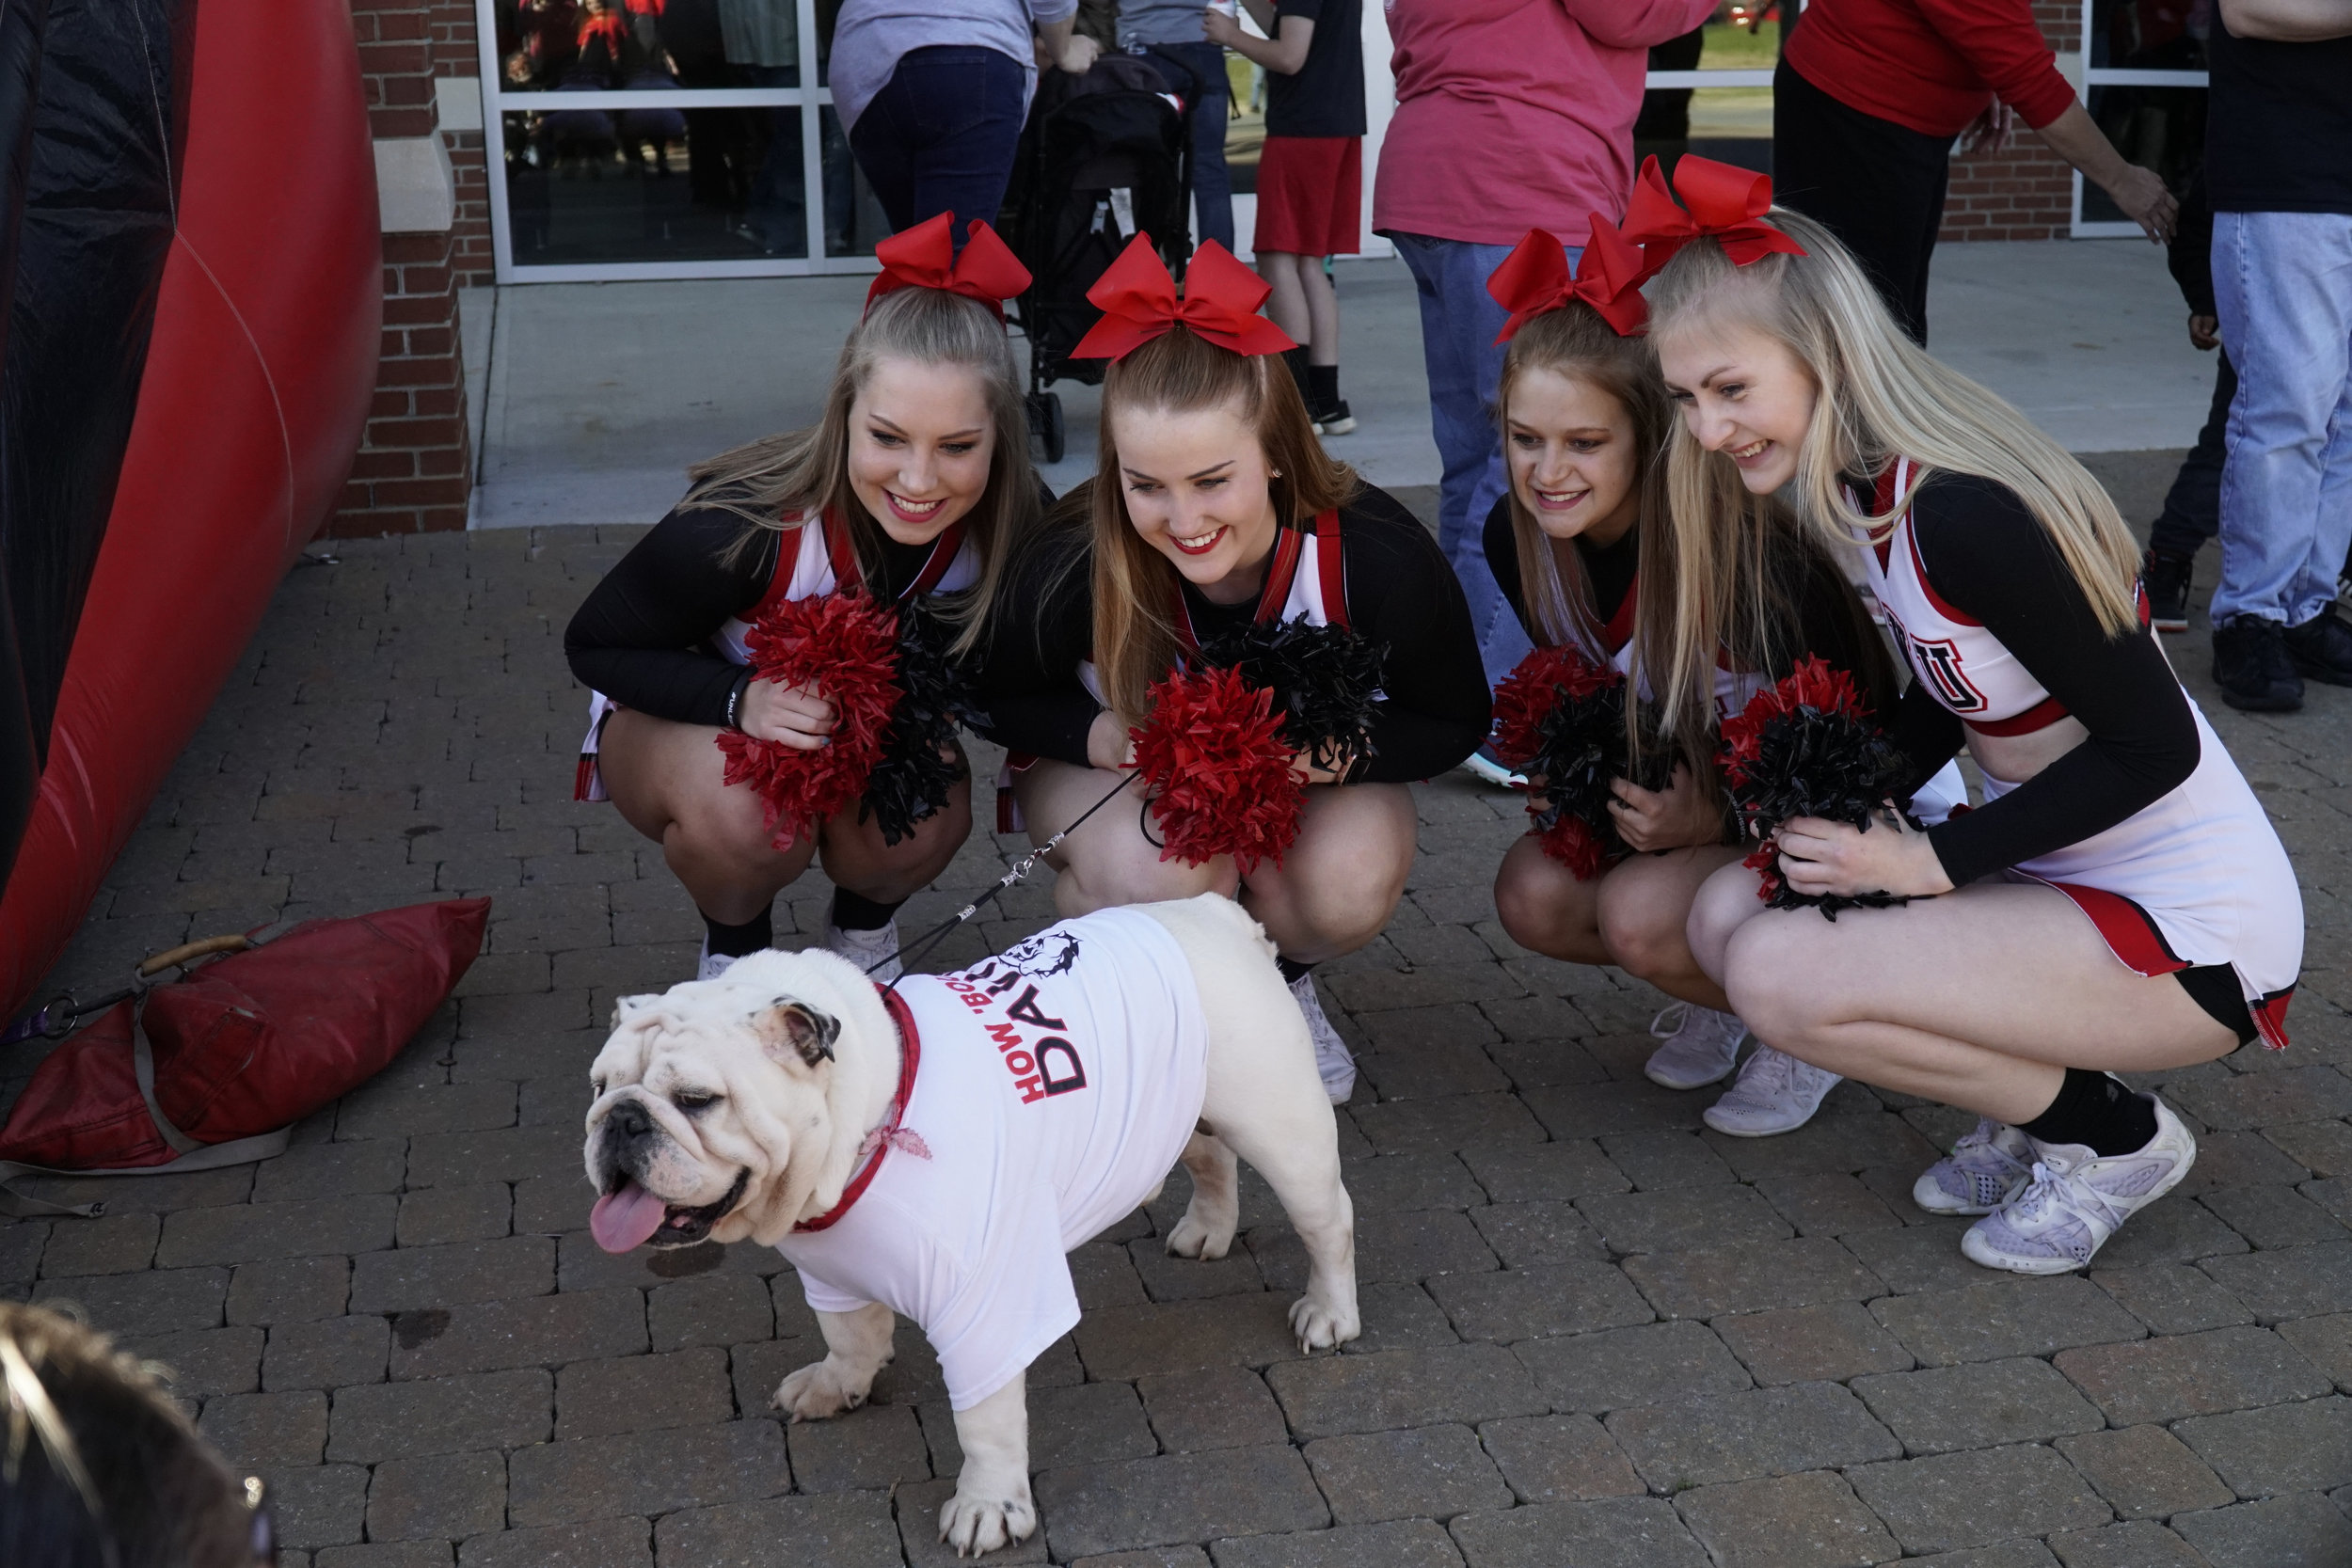 Cheerleaders posing for a photo with Roebuck.